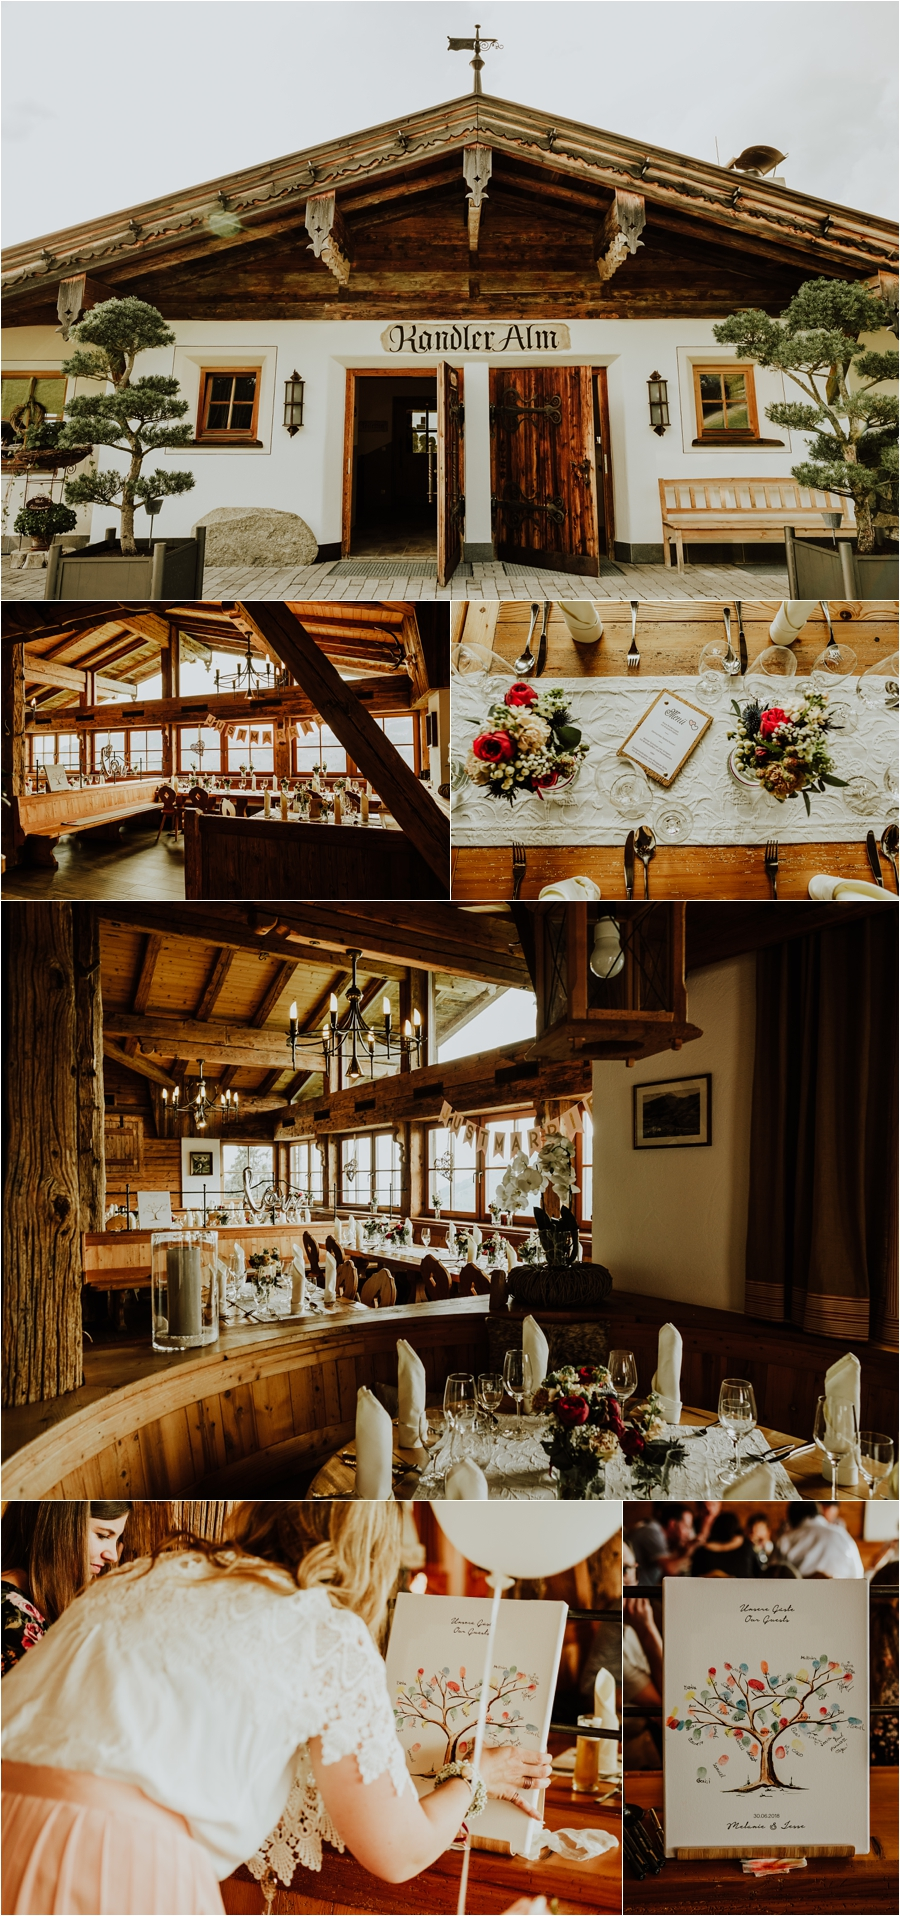 A wedding reception in the Kandler Alm in Tirol by Wild Connections Photography